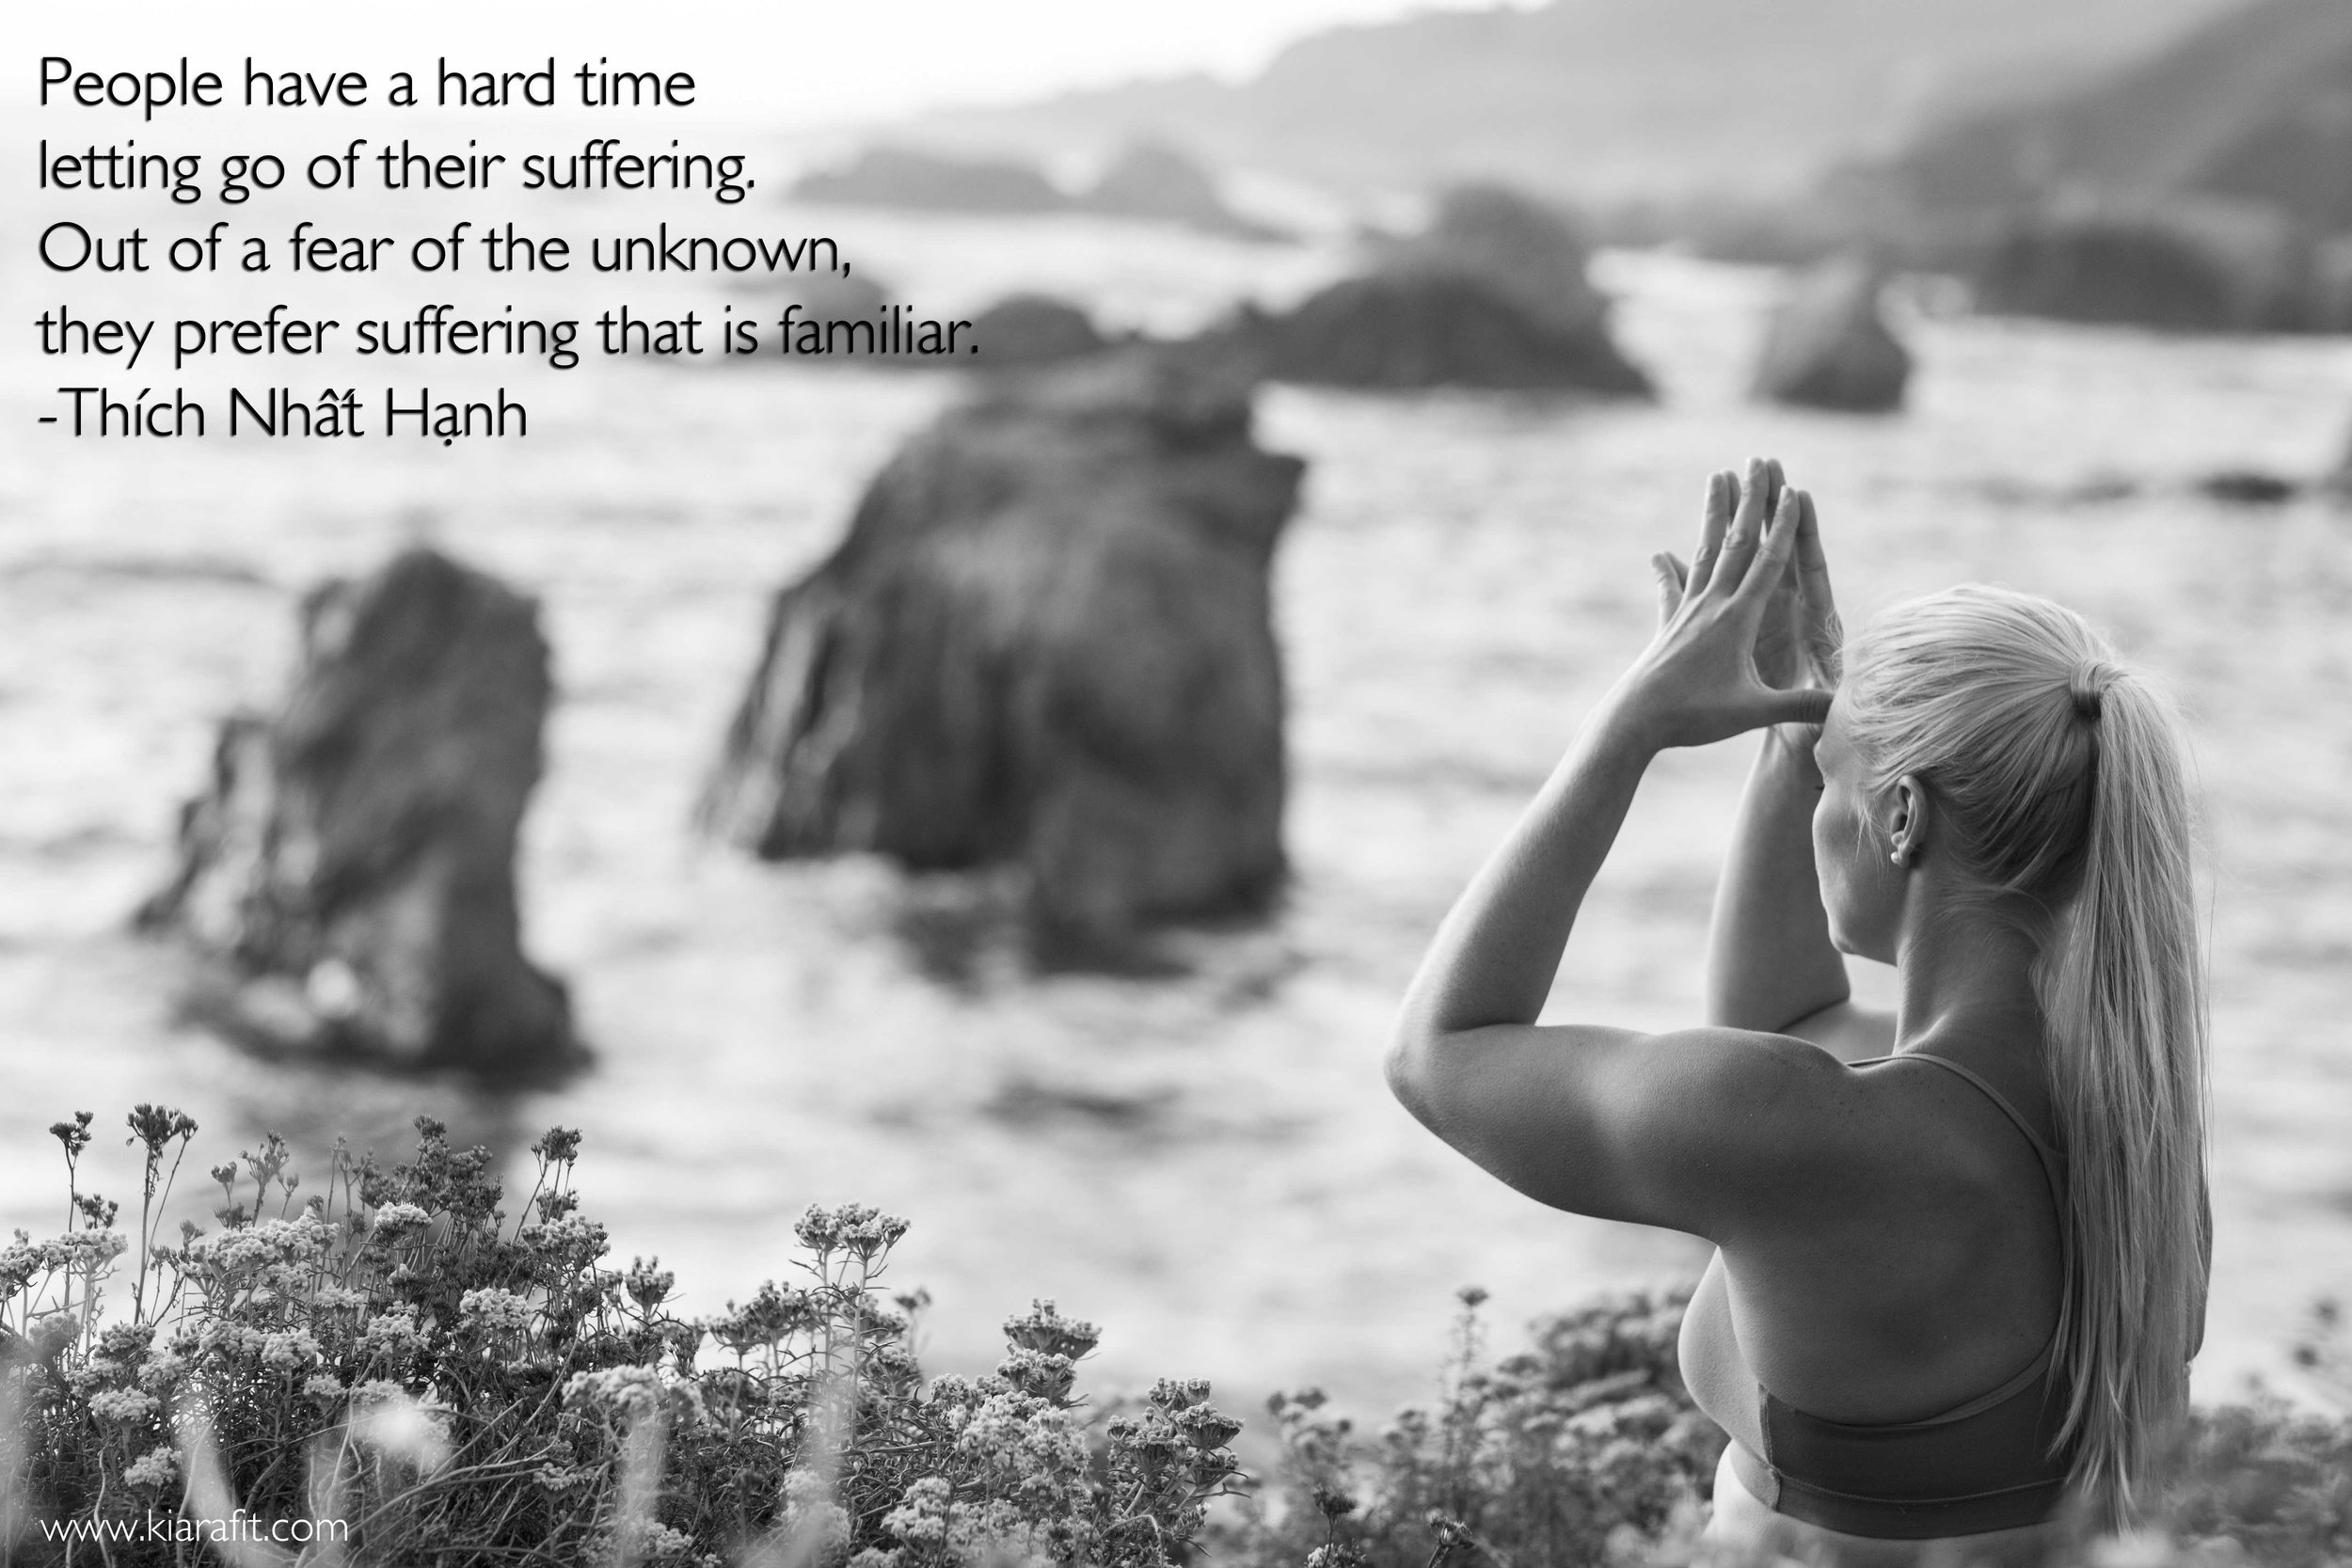 Letting Go Of Suffering Thich Nhat Hanh